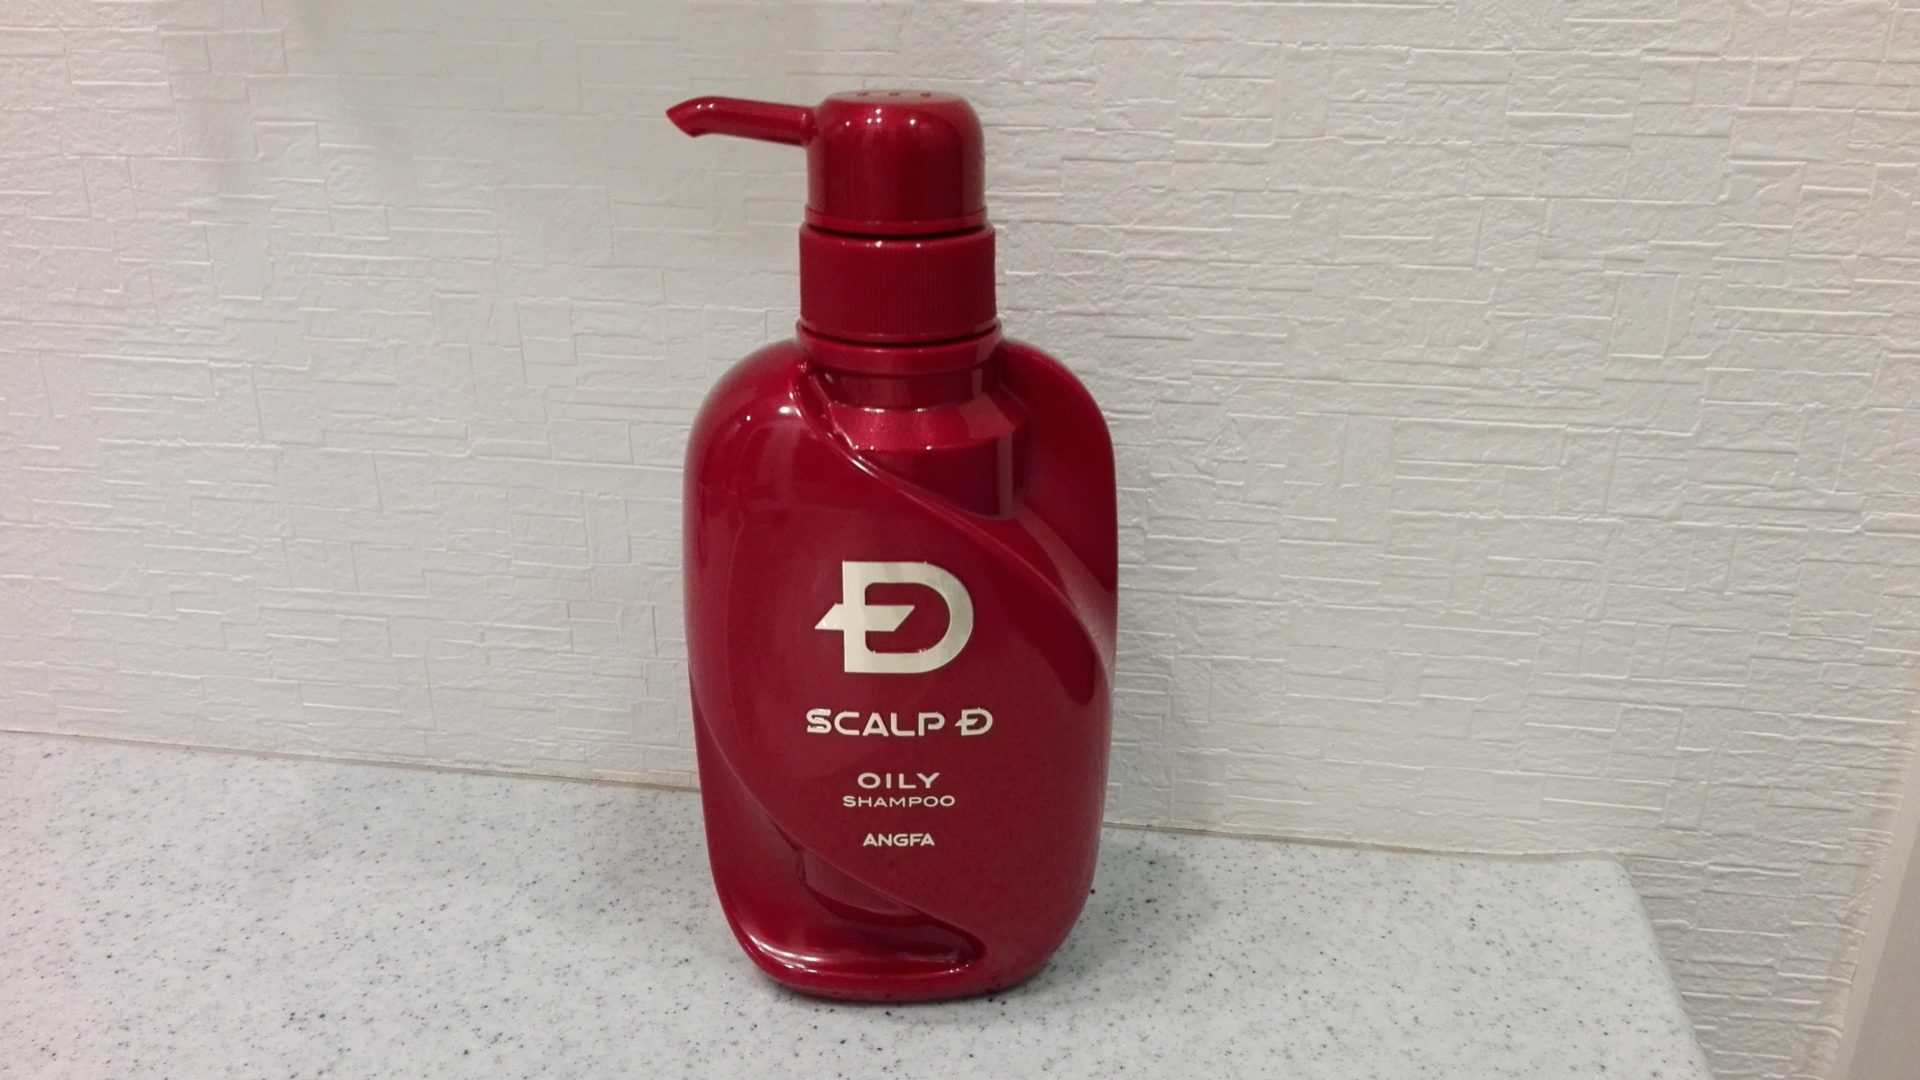 SCALP D OILY シャンプー